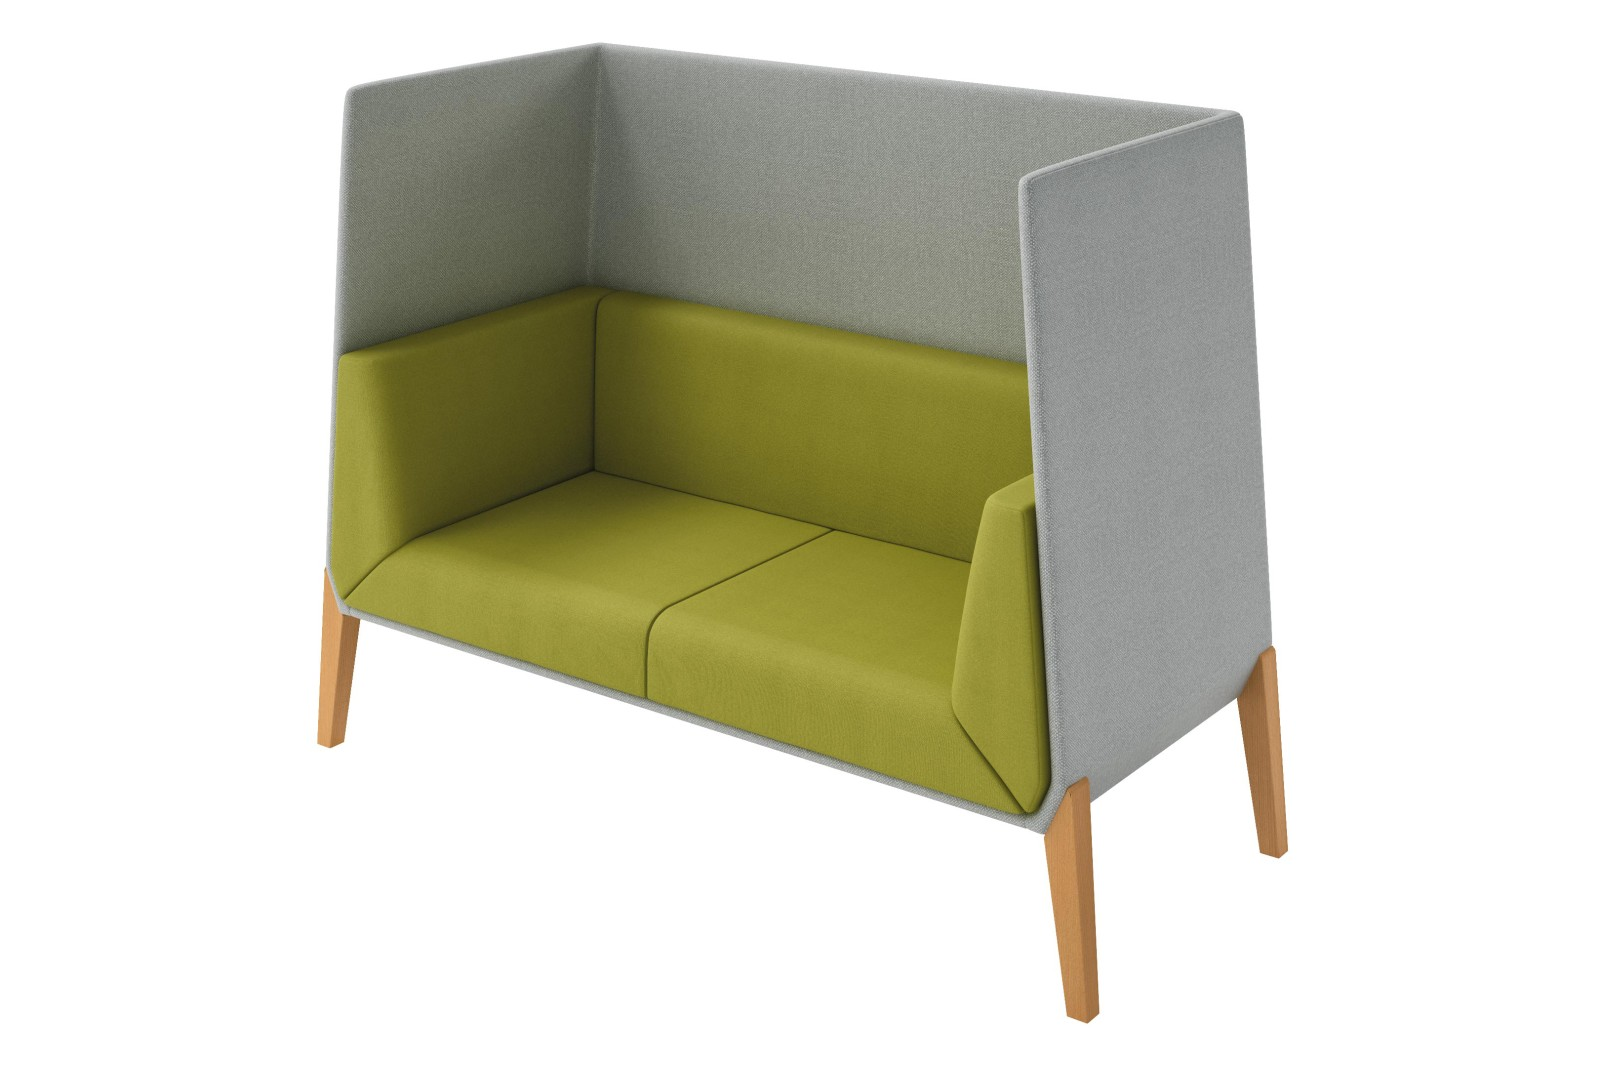 Accord 2 Seater Sofa High Backrest Pricegrp. C01, Pricegrp. C01, Beech wood